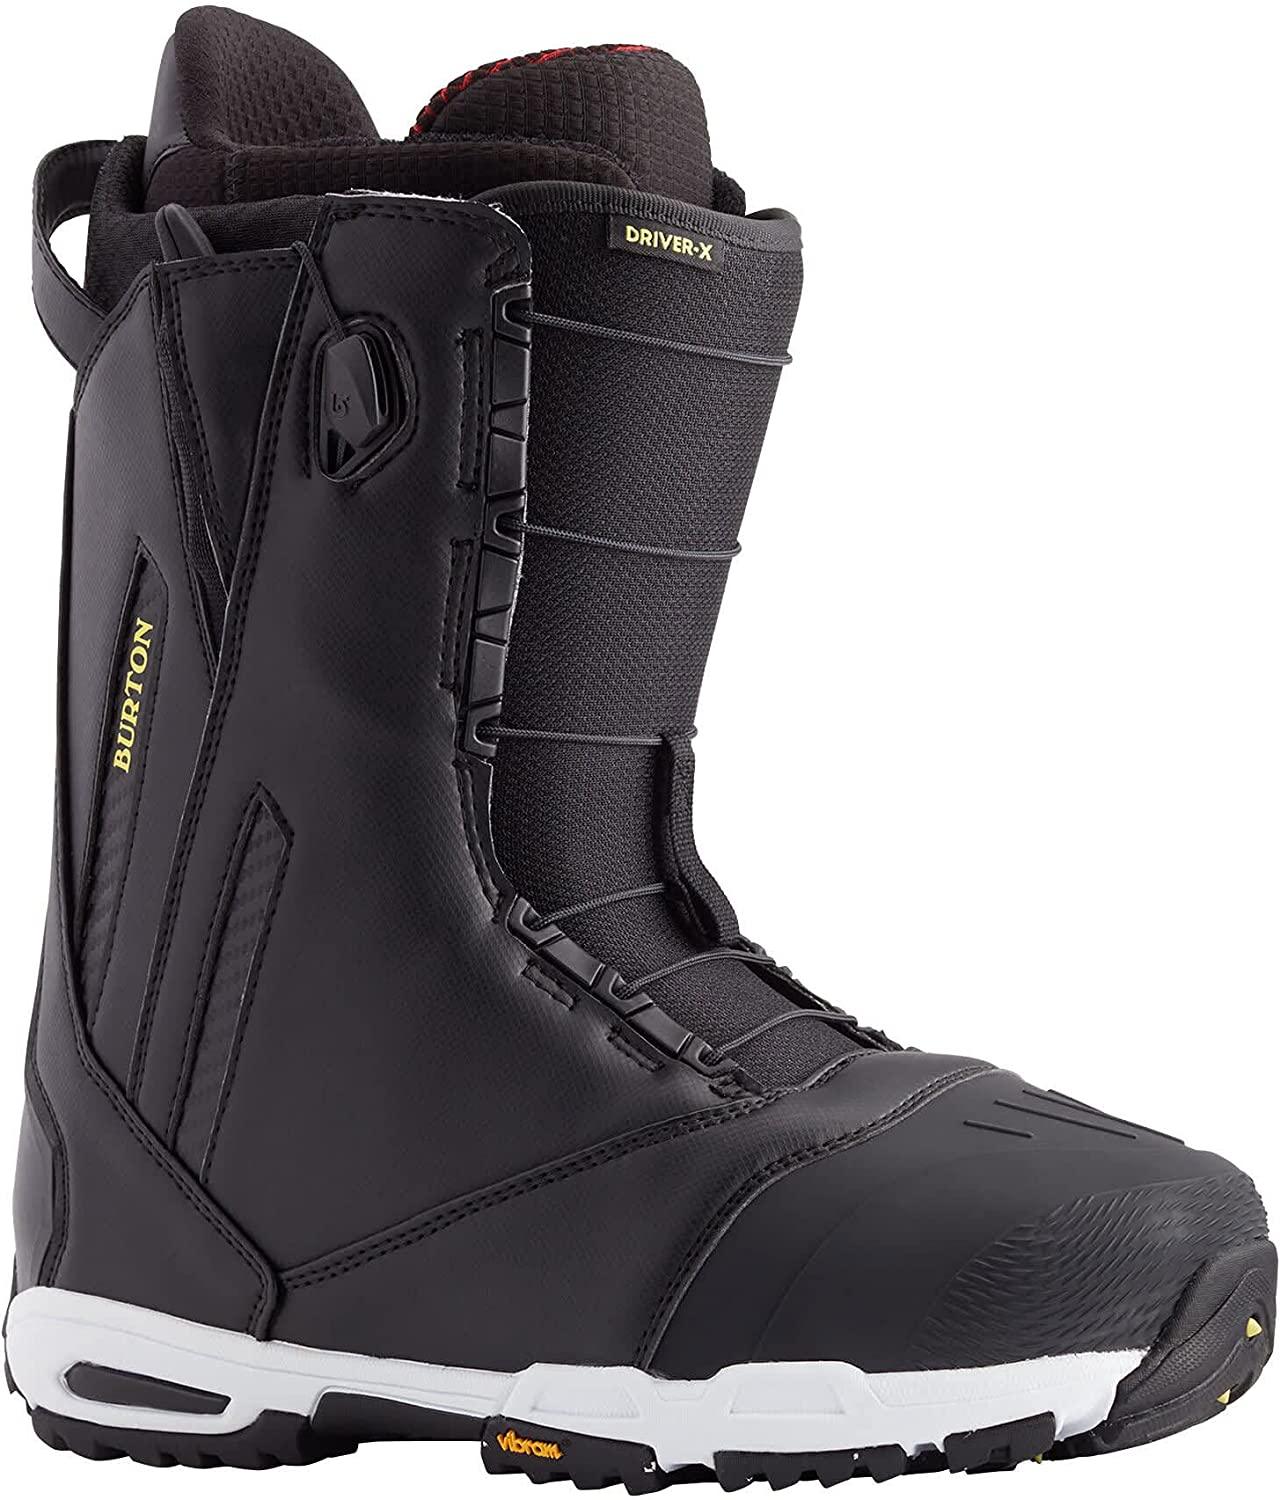 Seasonal Wrap Introduction BURTON New products world's highest quality popular Driver X Snowboard Boots Mens